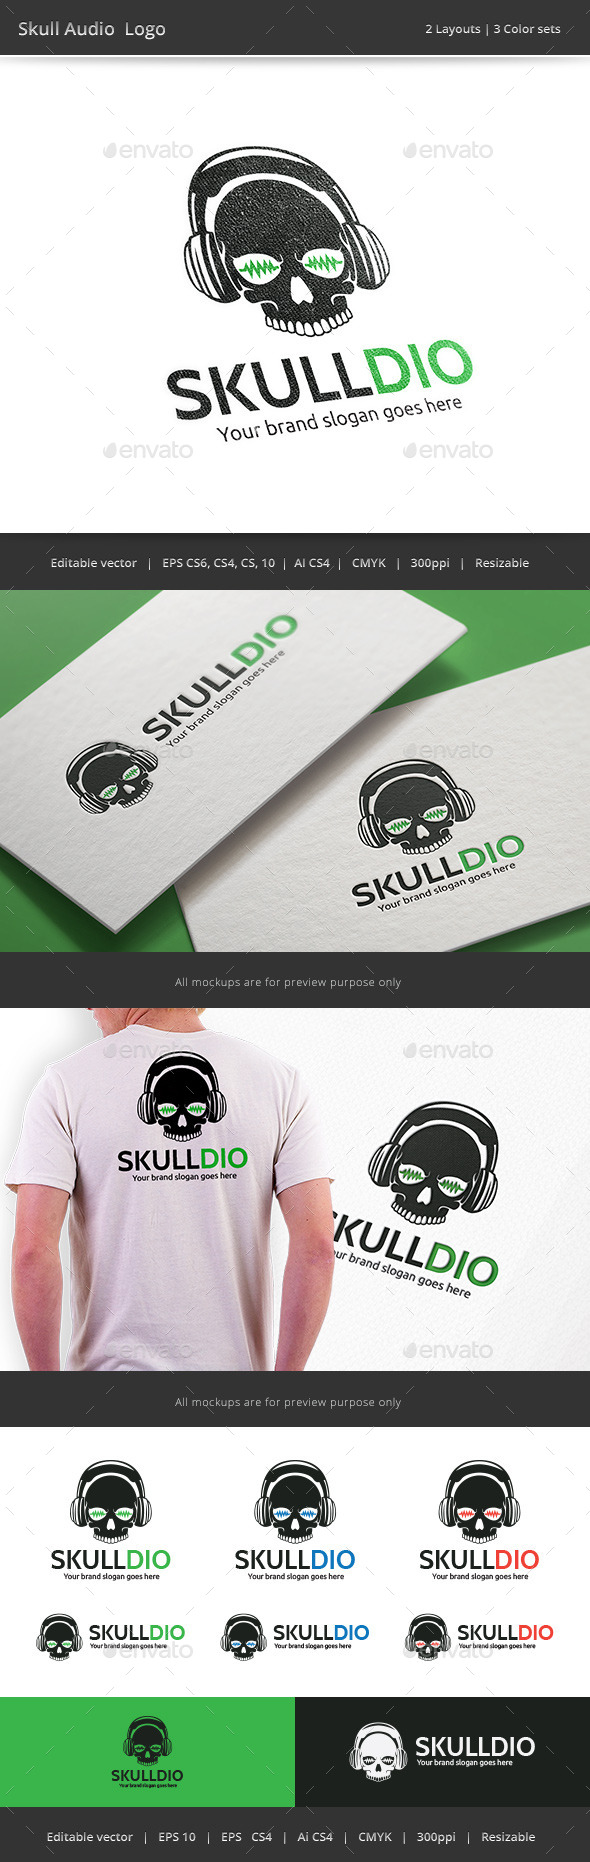 Skull Audio Logo - Objects Logo Templates